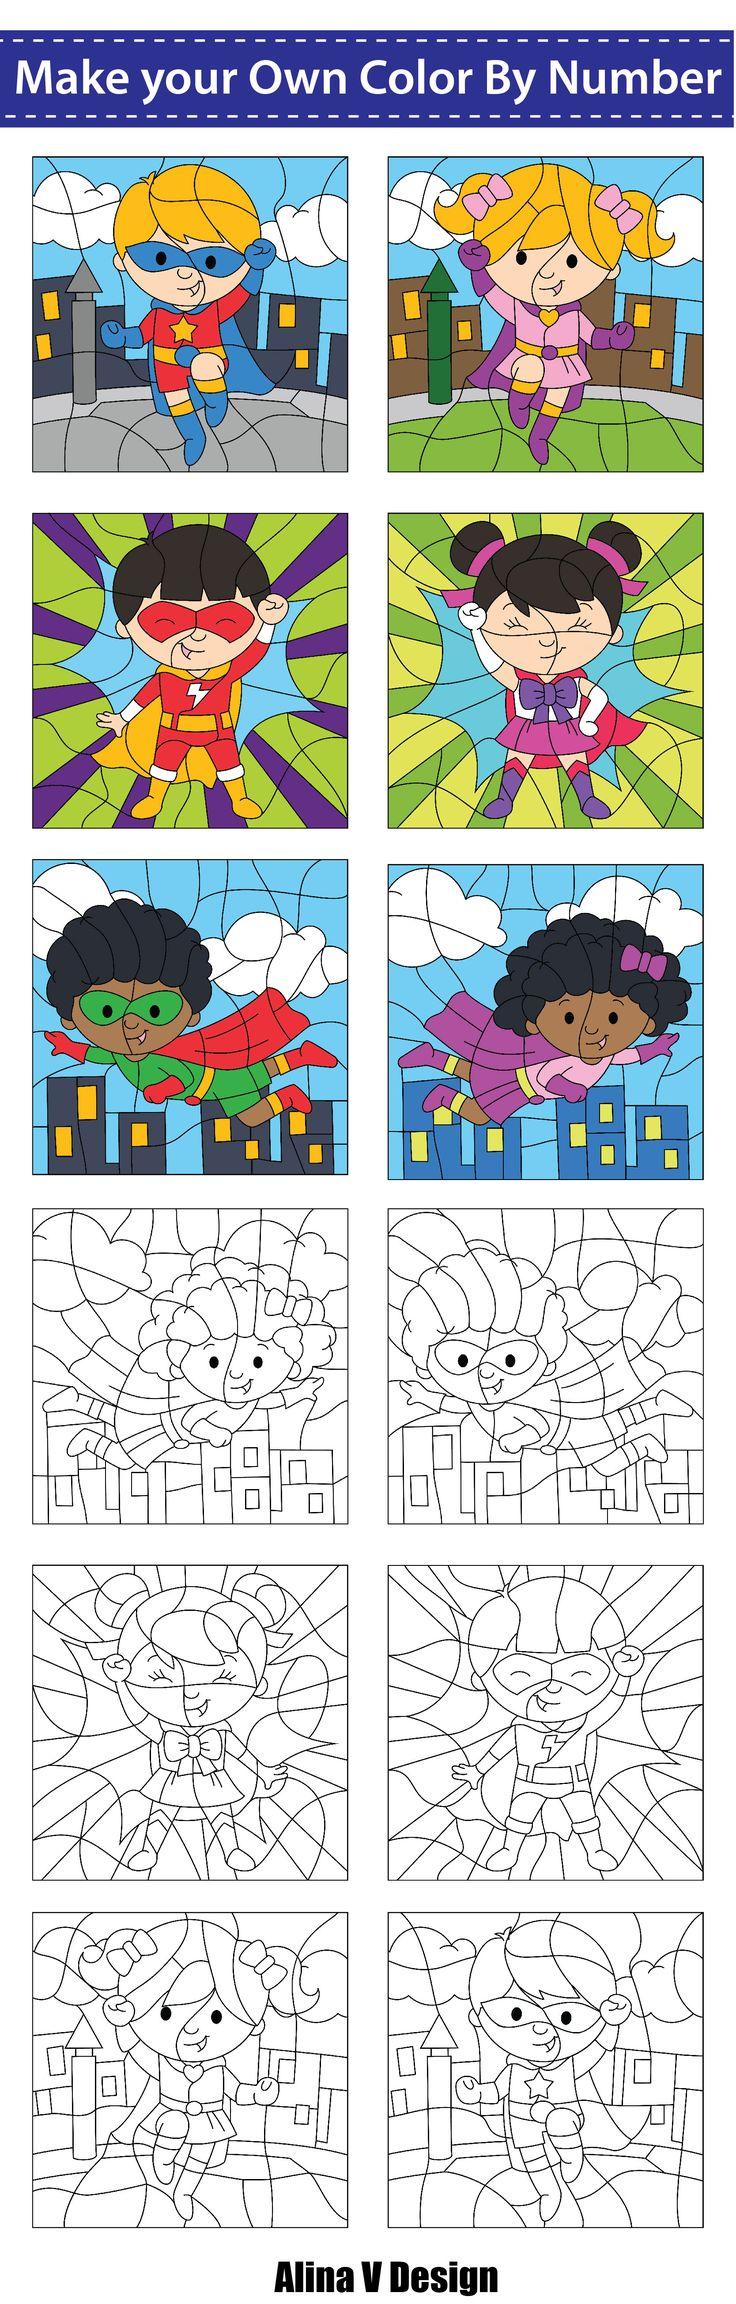 Make Your Own Color By Number, Color By Code - Superhero Theme ...